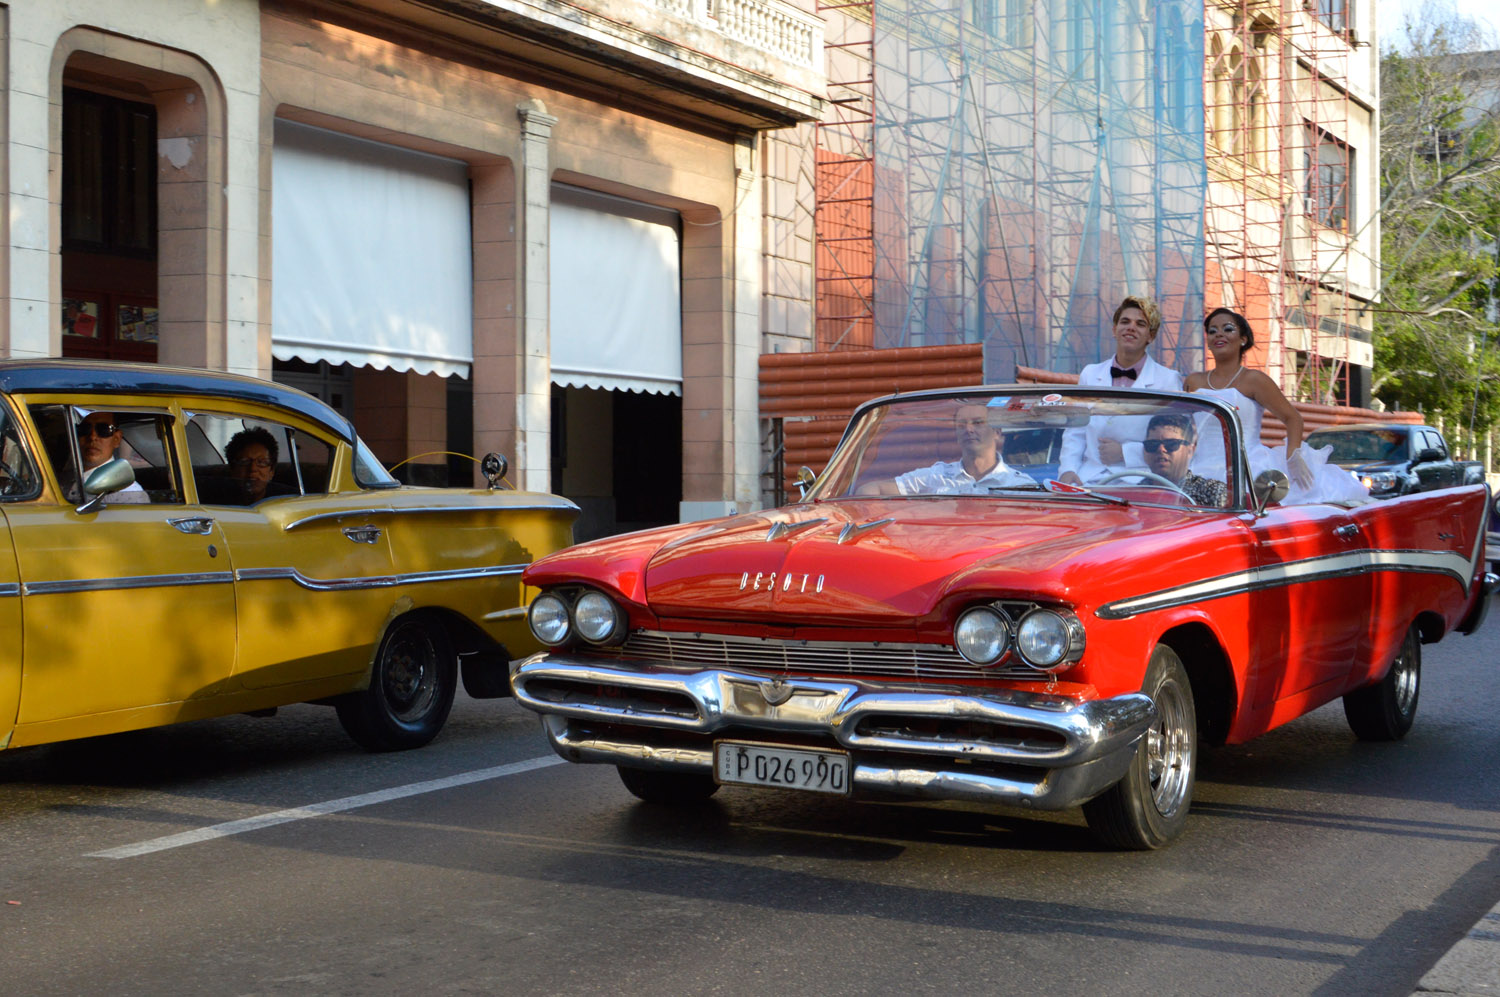 Cuba-Havana-Red-Classic-Car-Couple-Celebration.jpg